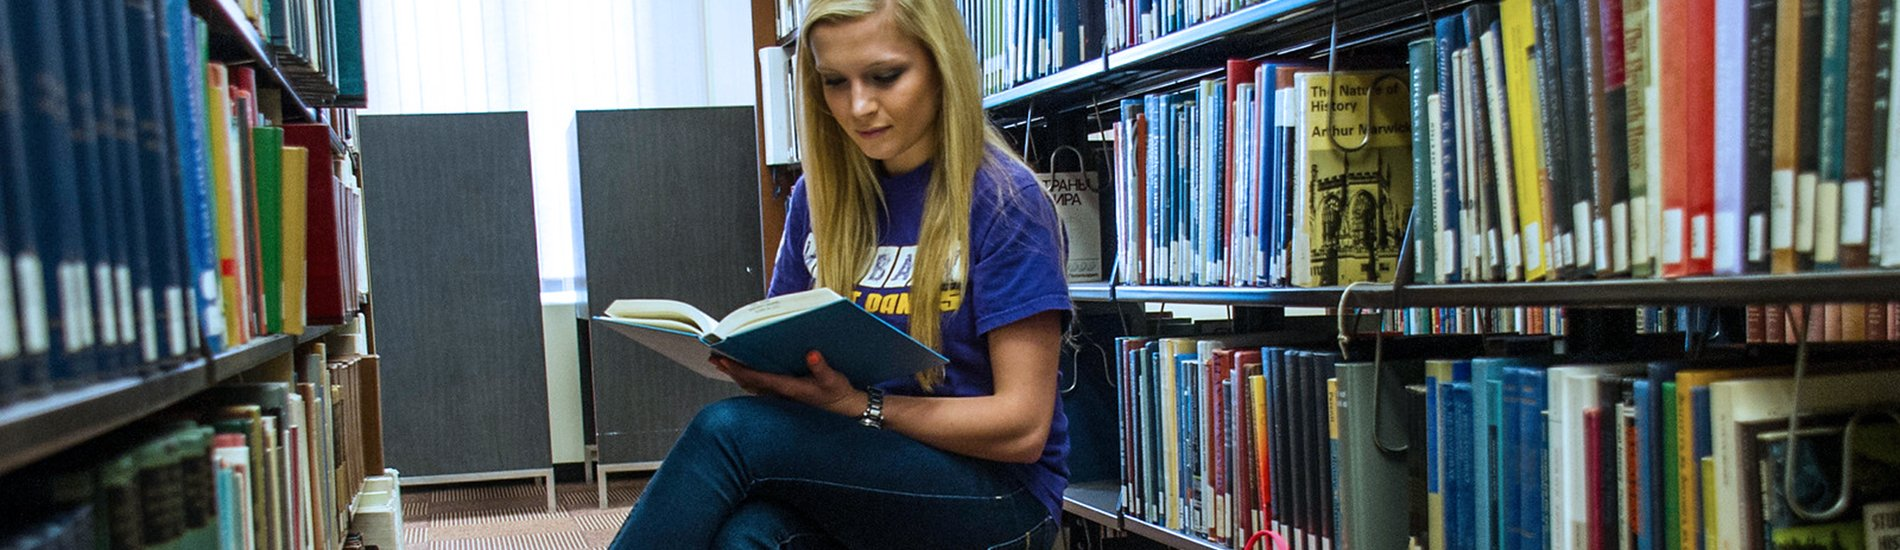 Female student reading a book in the stacks of the UAlbany library